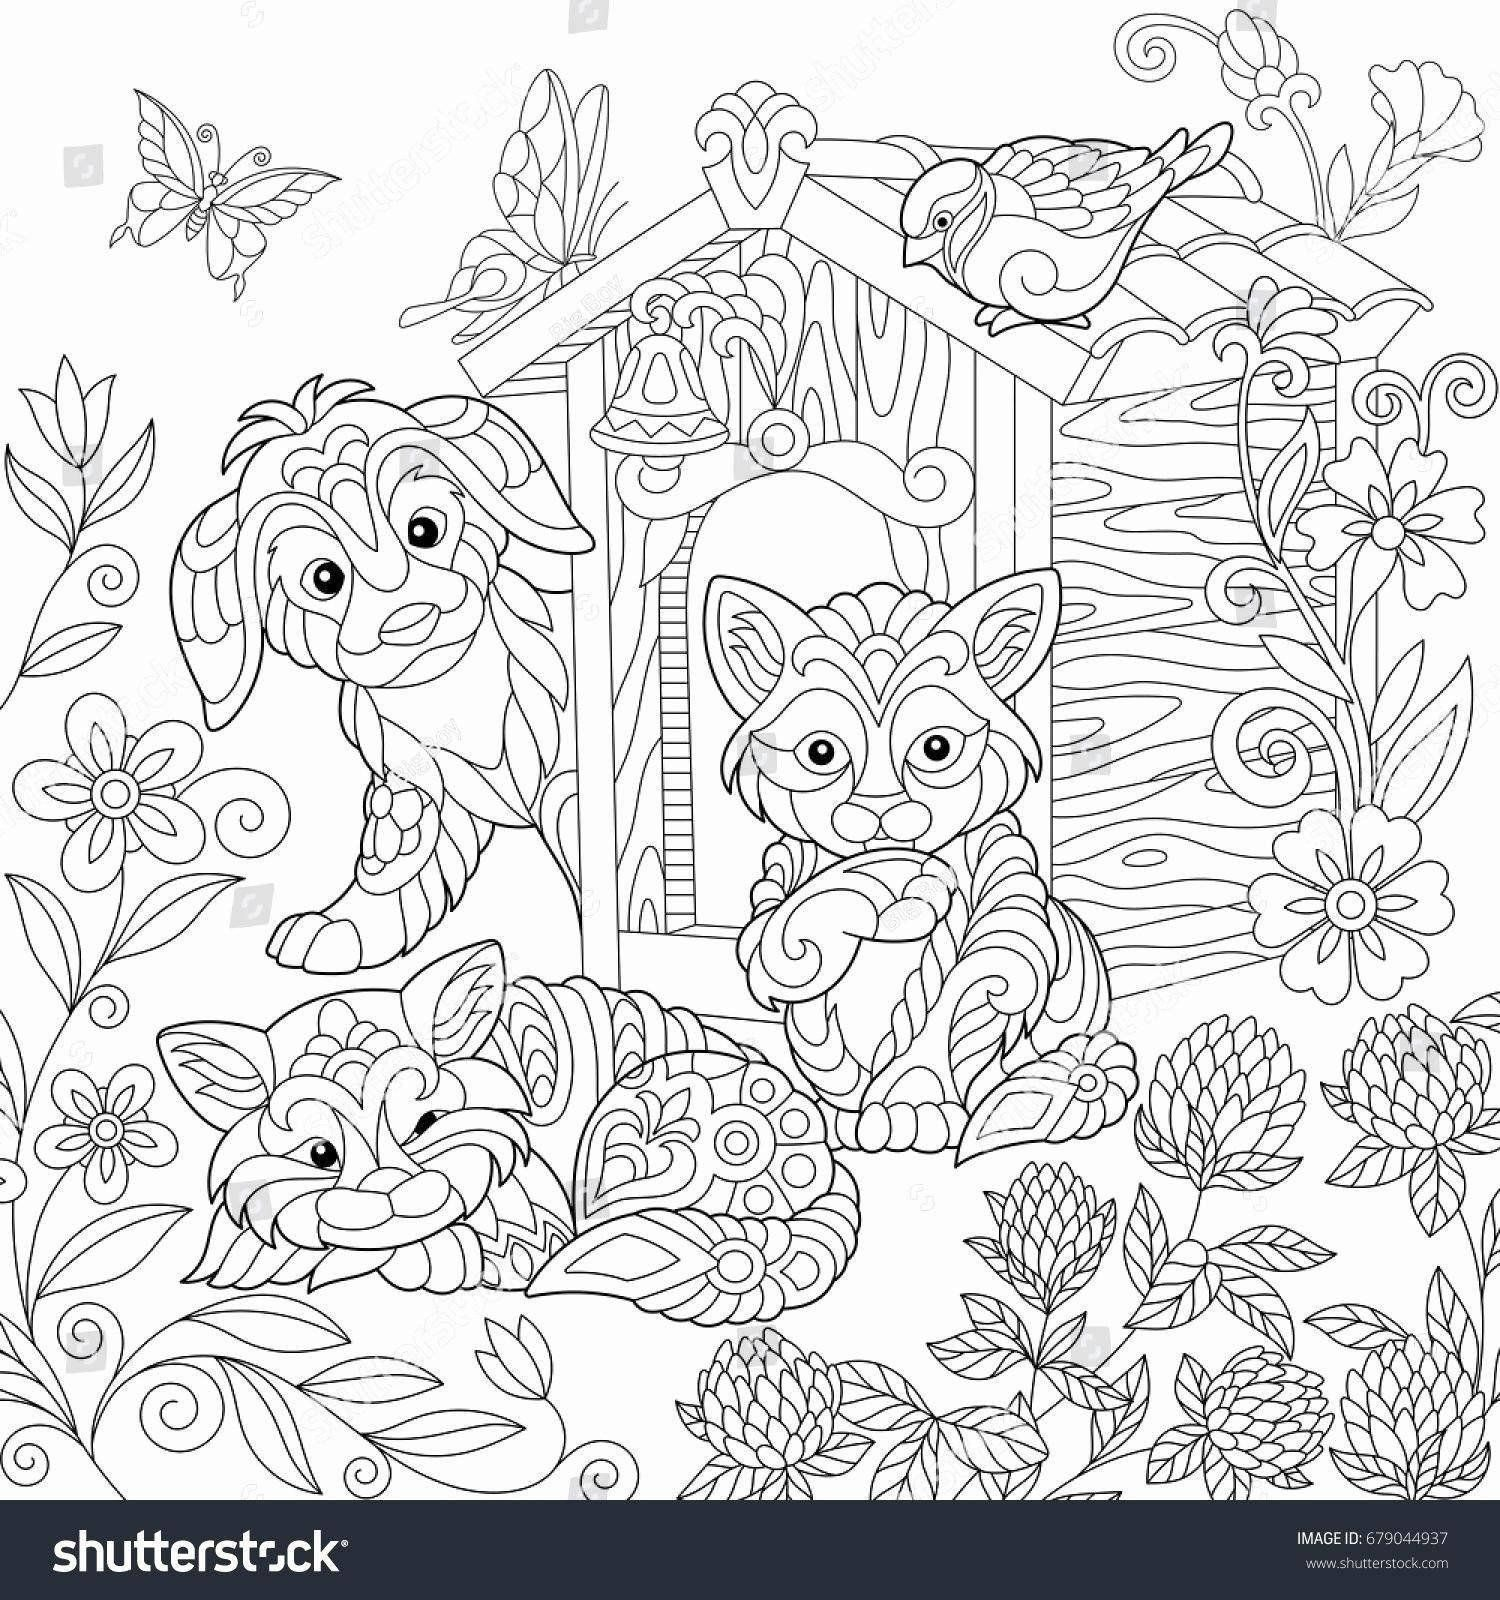 Pete The Cat Coloring Page Luxury Warrior Cats Coloring